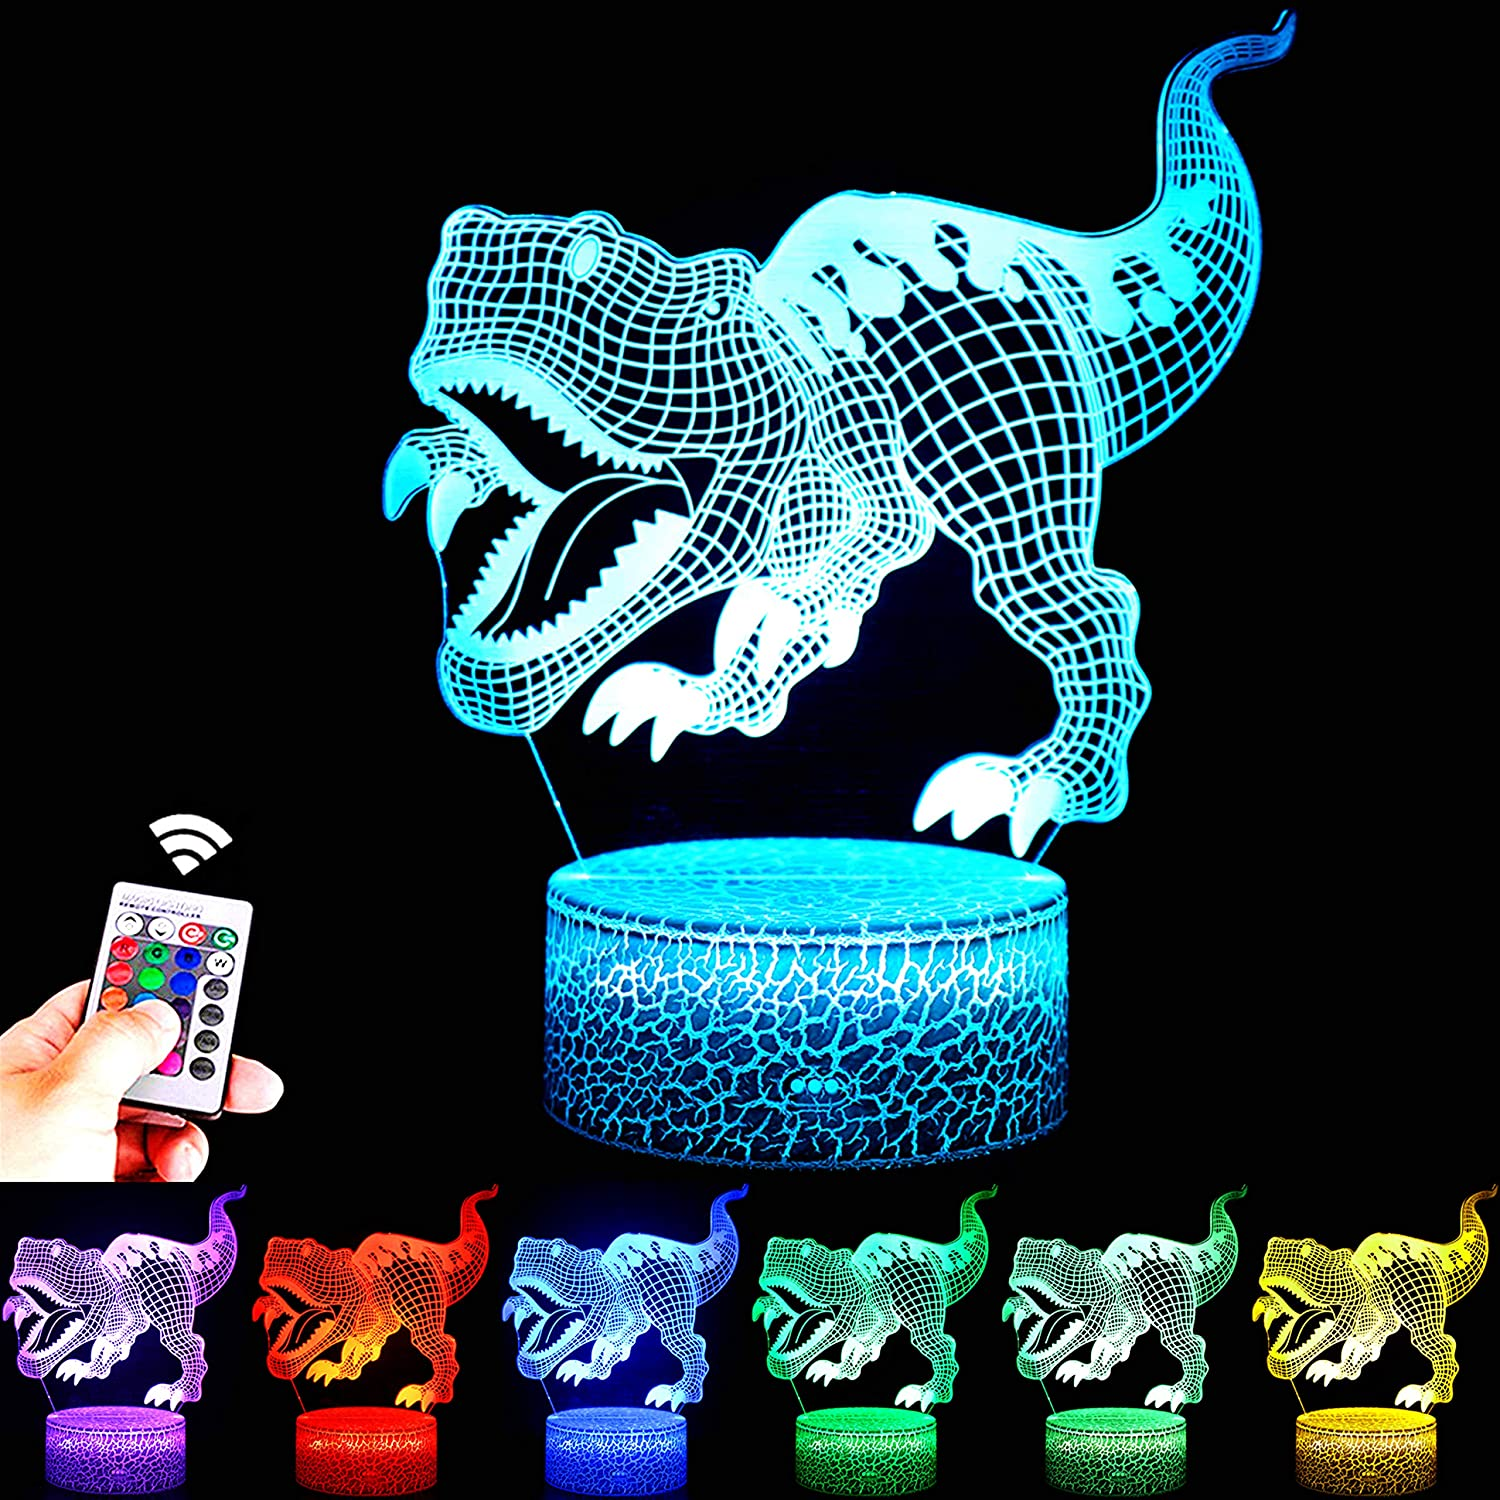 FUFUYOU Dinosaur Toys, 16 Colors 3D Desk Lamp Dimmable Dinosaur Night Light with Remote T Rex for Kids Age 2 3 4 5 6 7 8-12 Year Old Boys Bedroom Decoration Birthday Creative Gifts